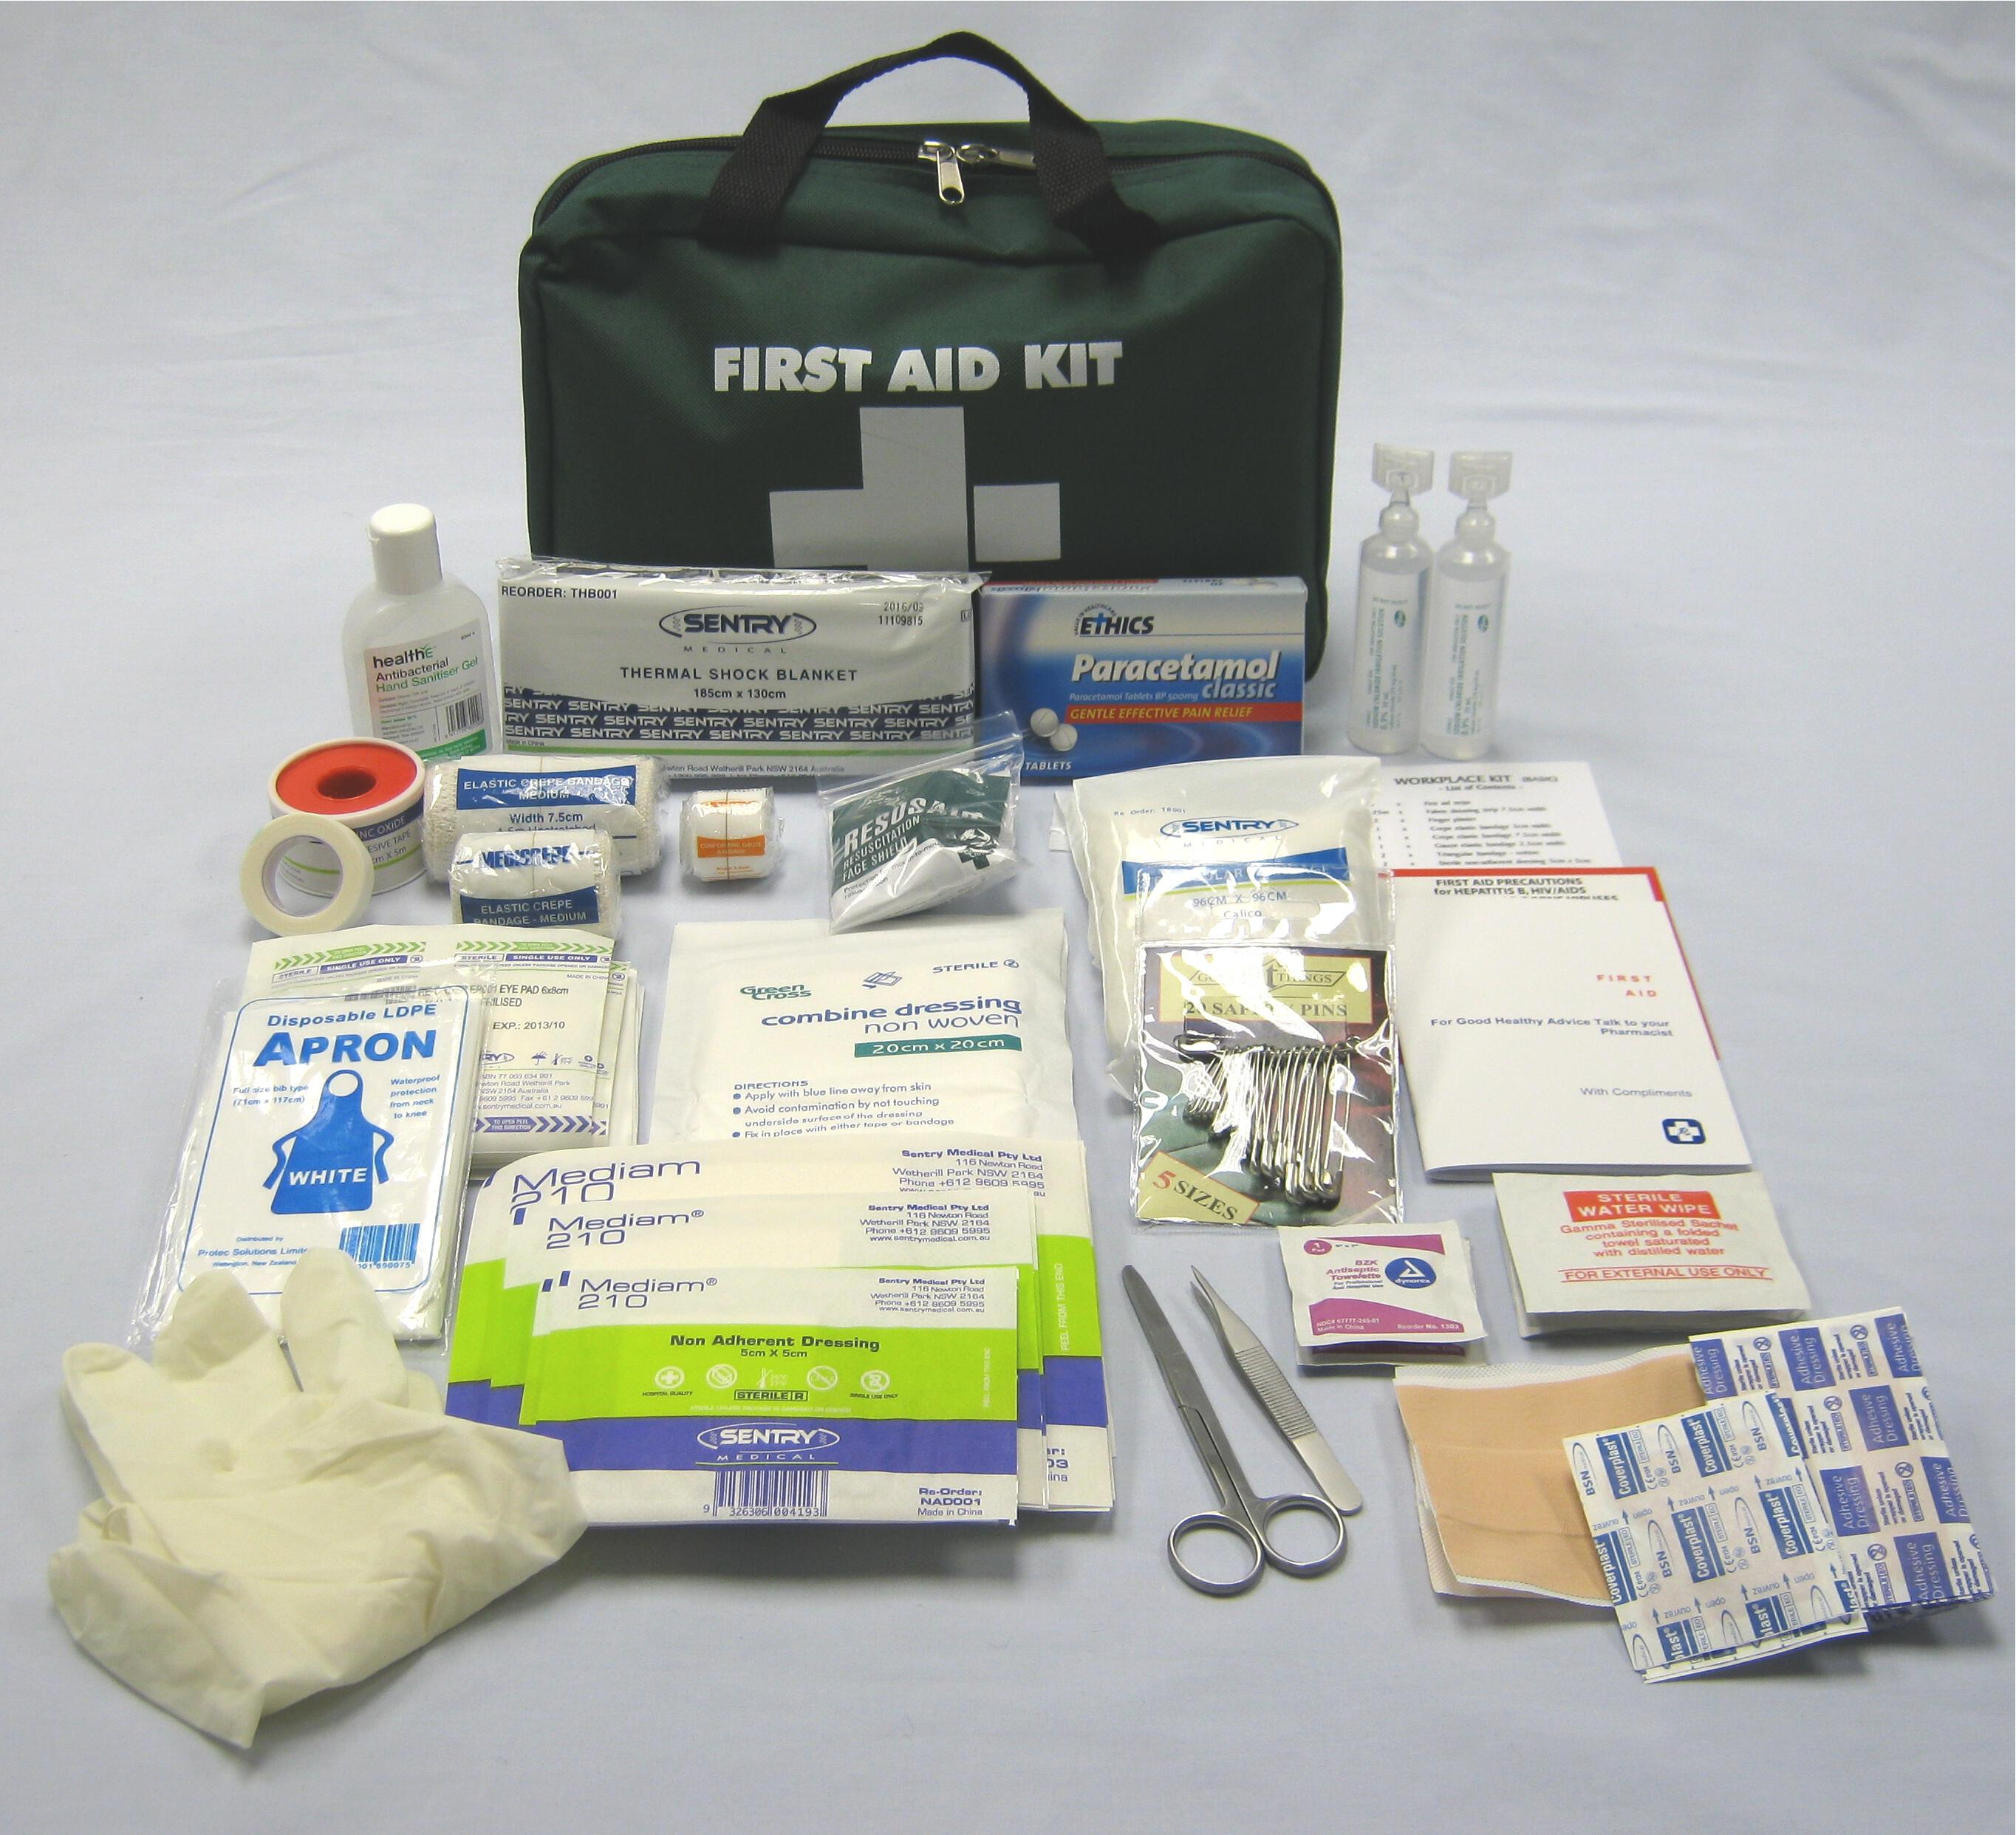 workplace industrial first aid supplies basic workplace kit designed to meet osh requirements